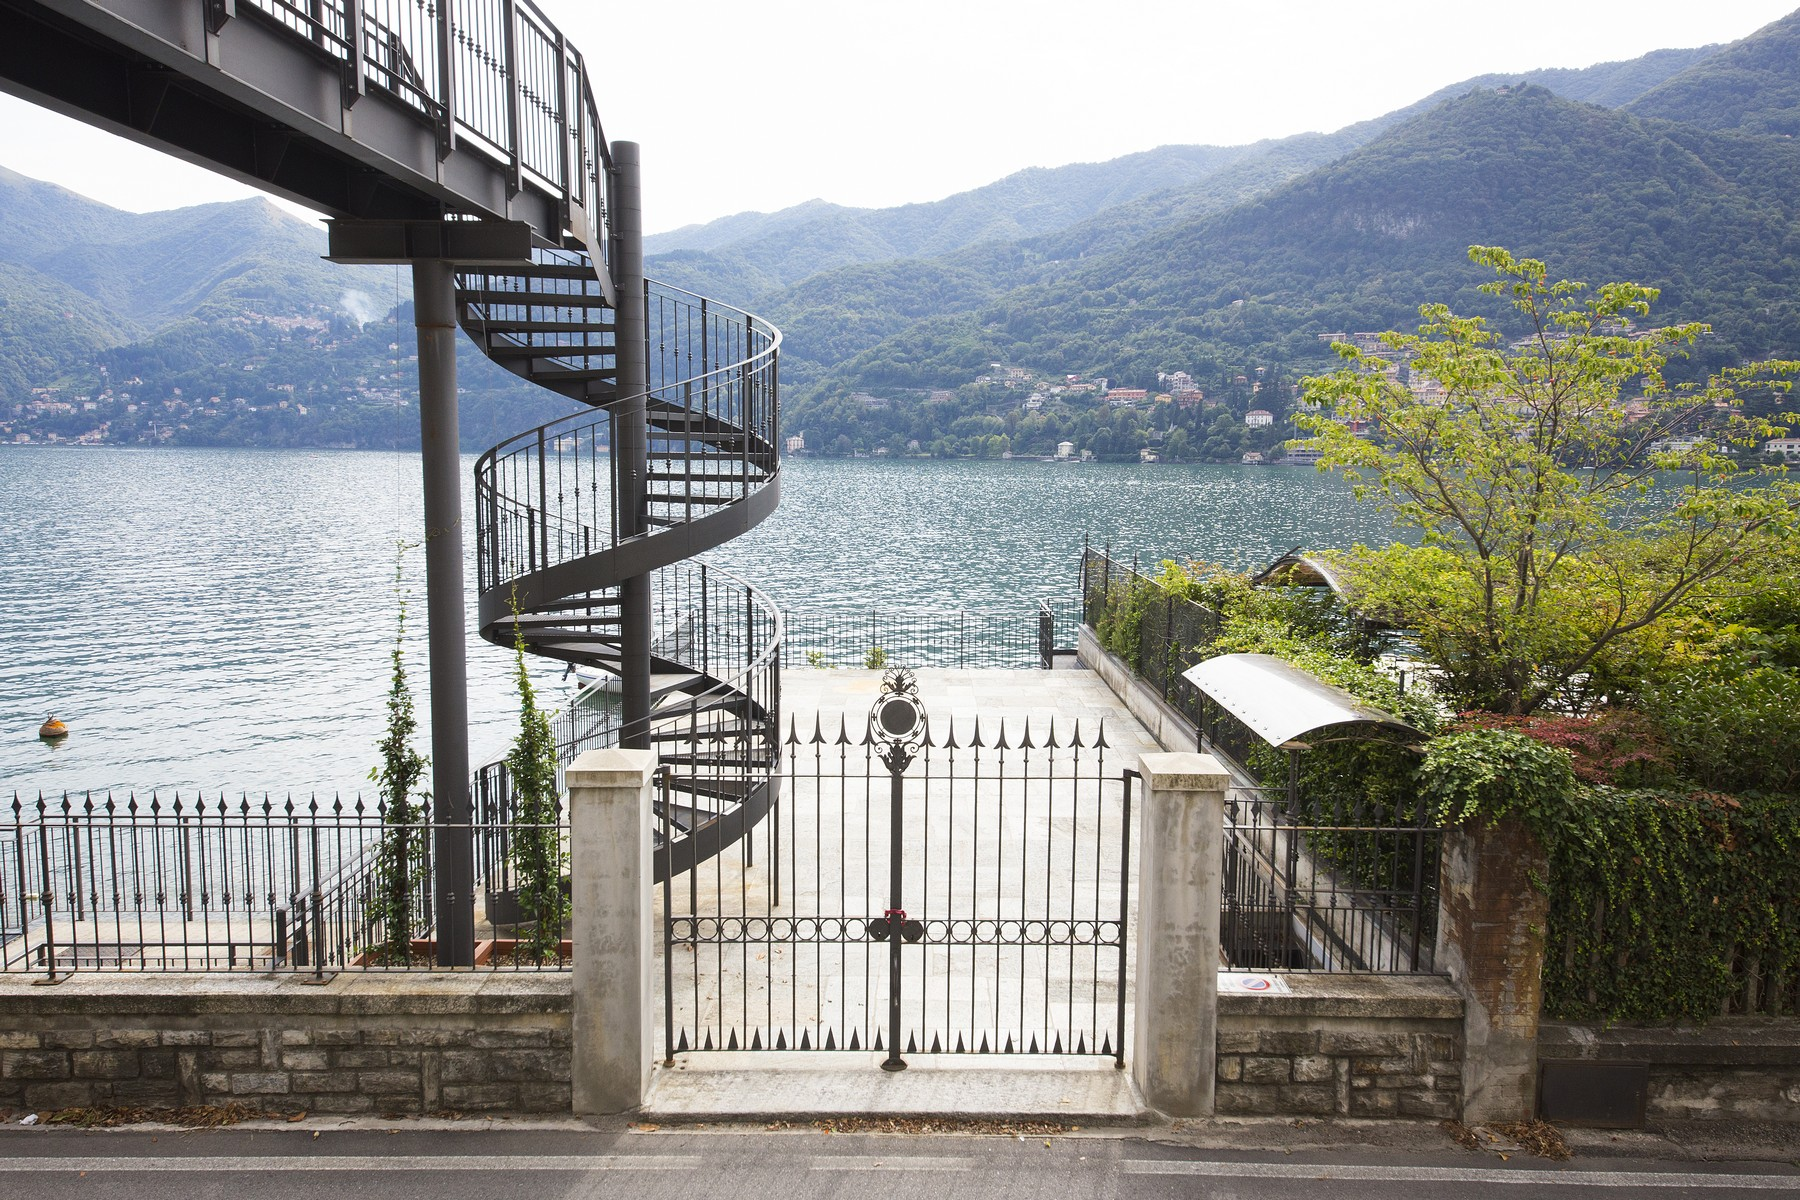 Additional photo for property listing at Fantastic villa liberty pieds dans l'eau on Lake Como Via Regina Vecchia Carate Urio, Como 22010 Italy